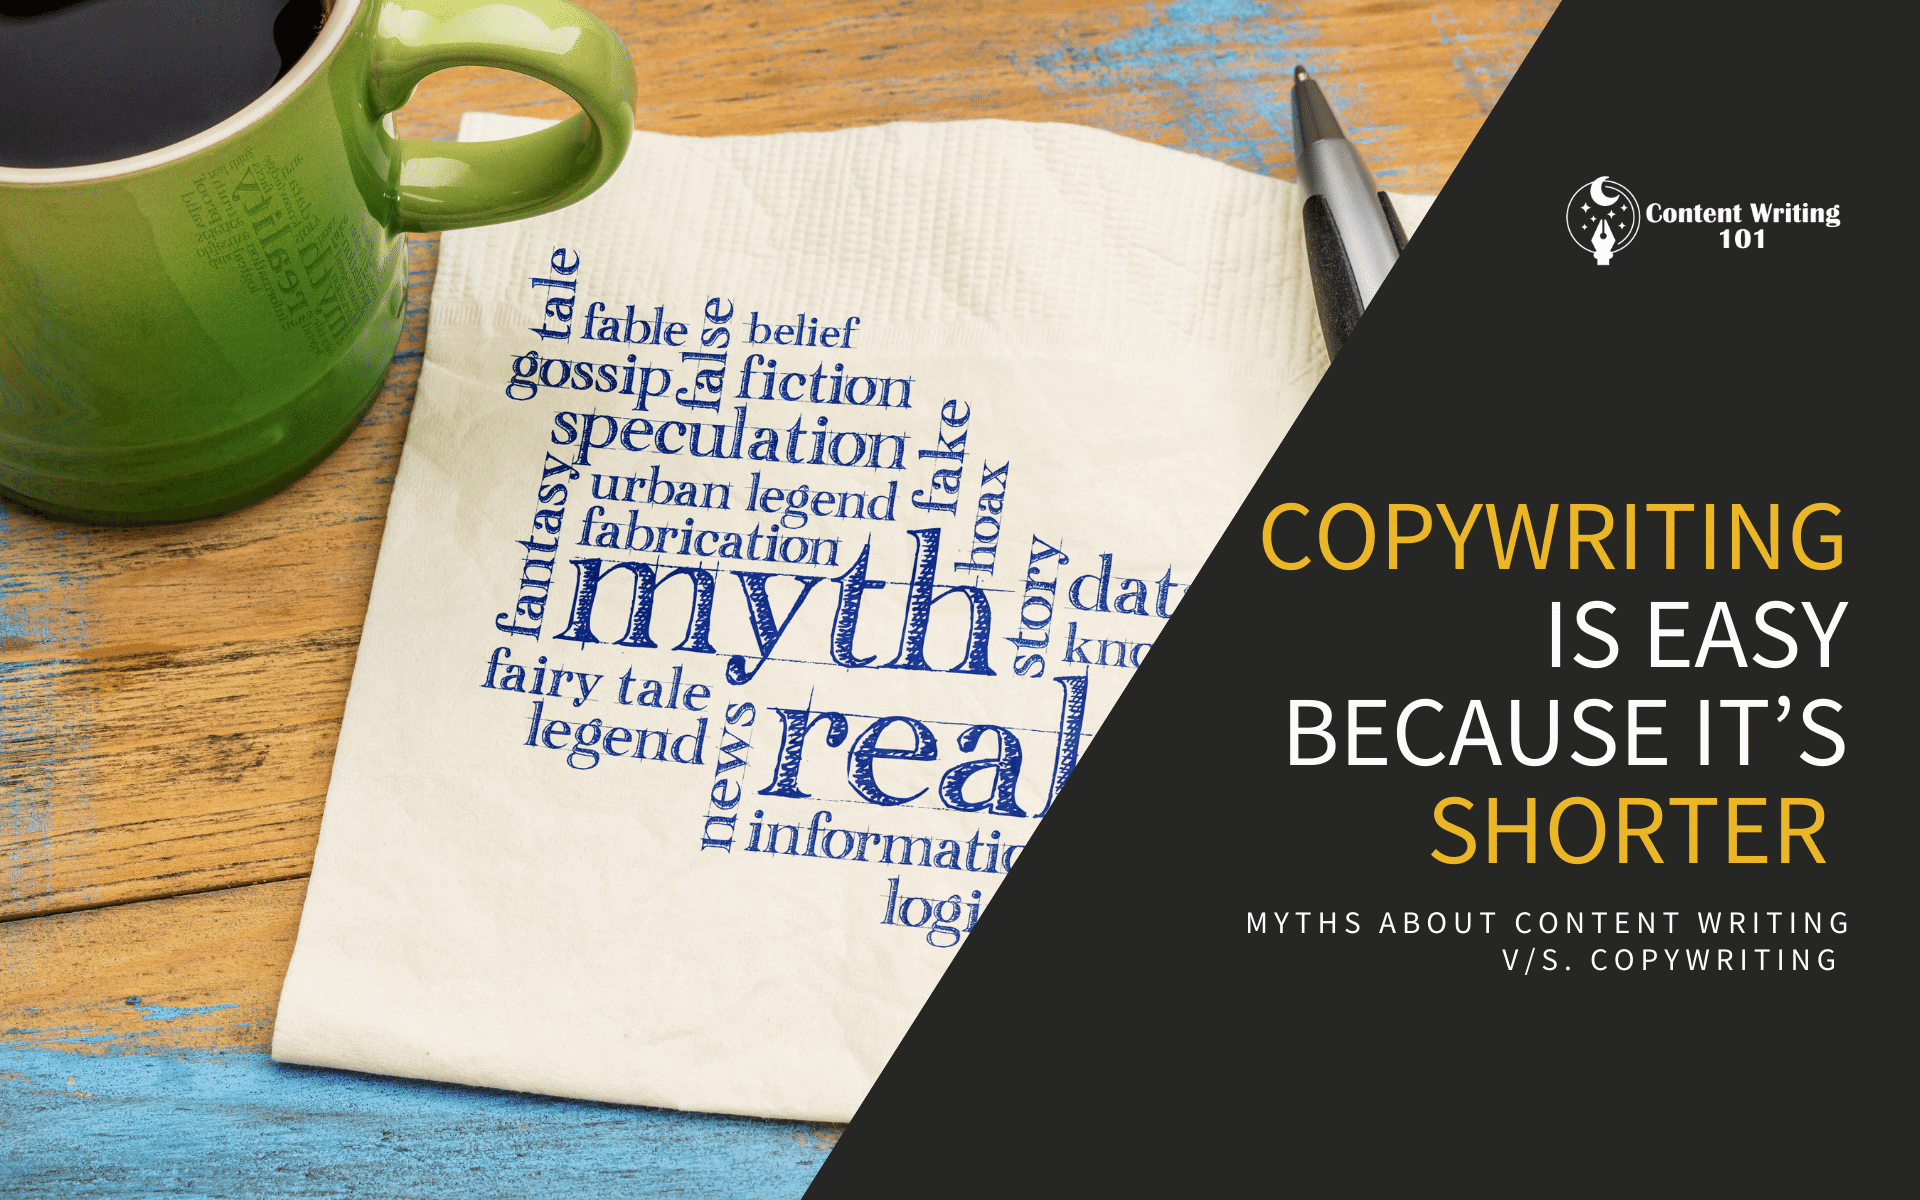 Copywriting Vs. Content Writing: Which One Is Worth More? Content Writing 101